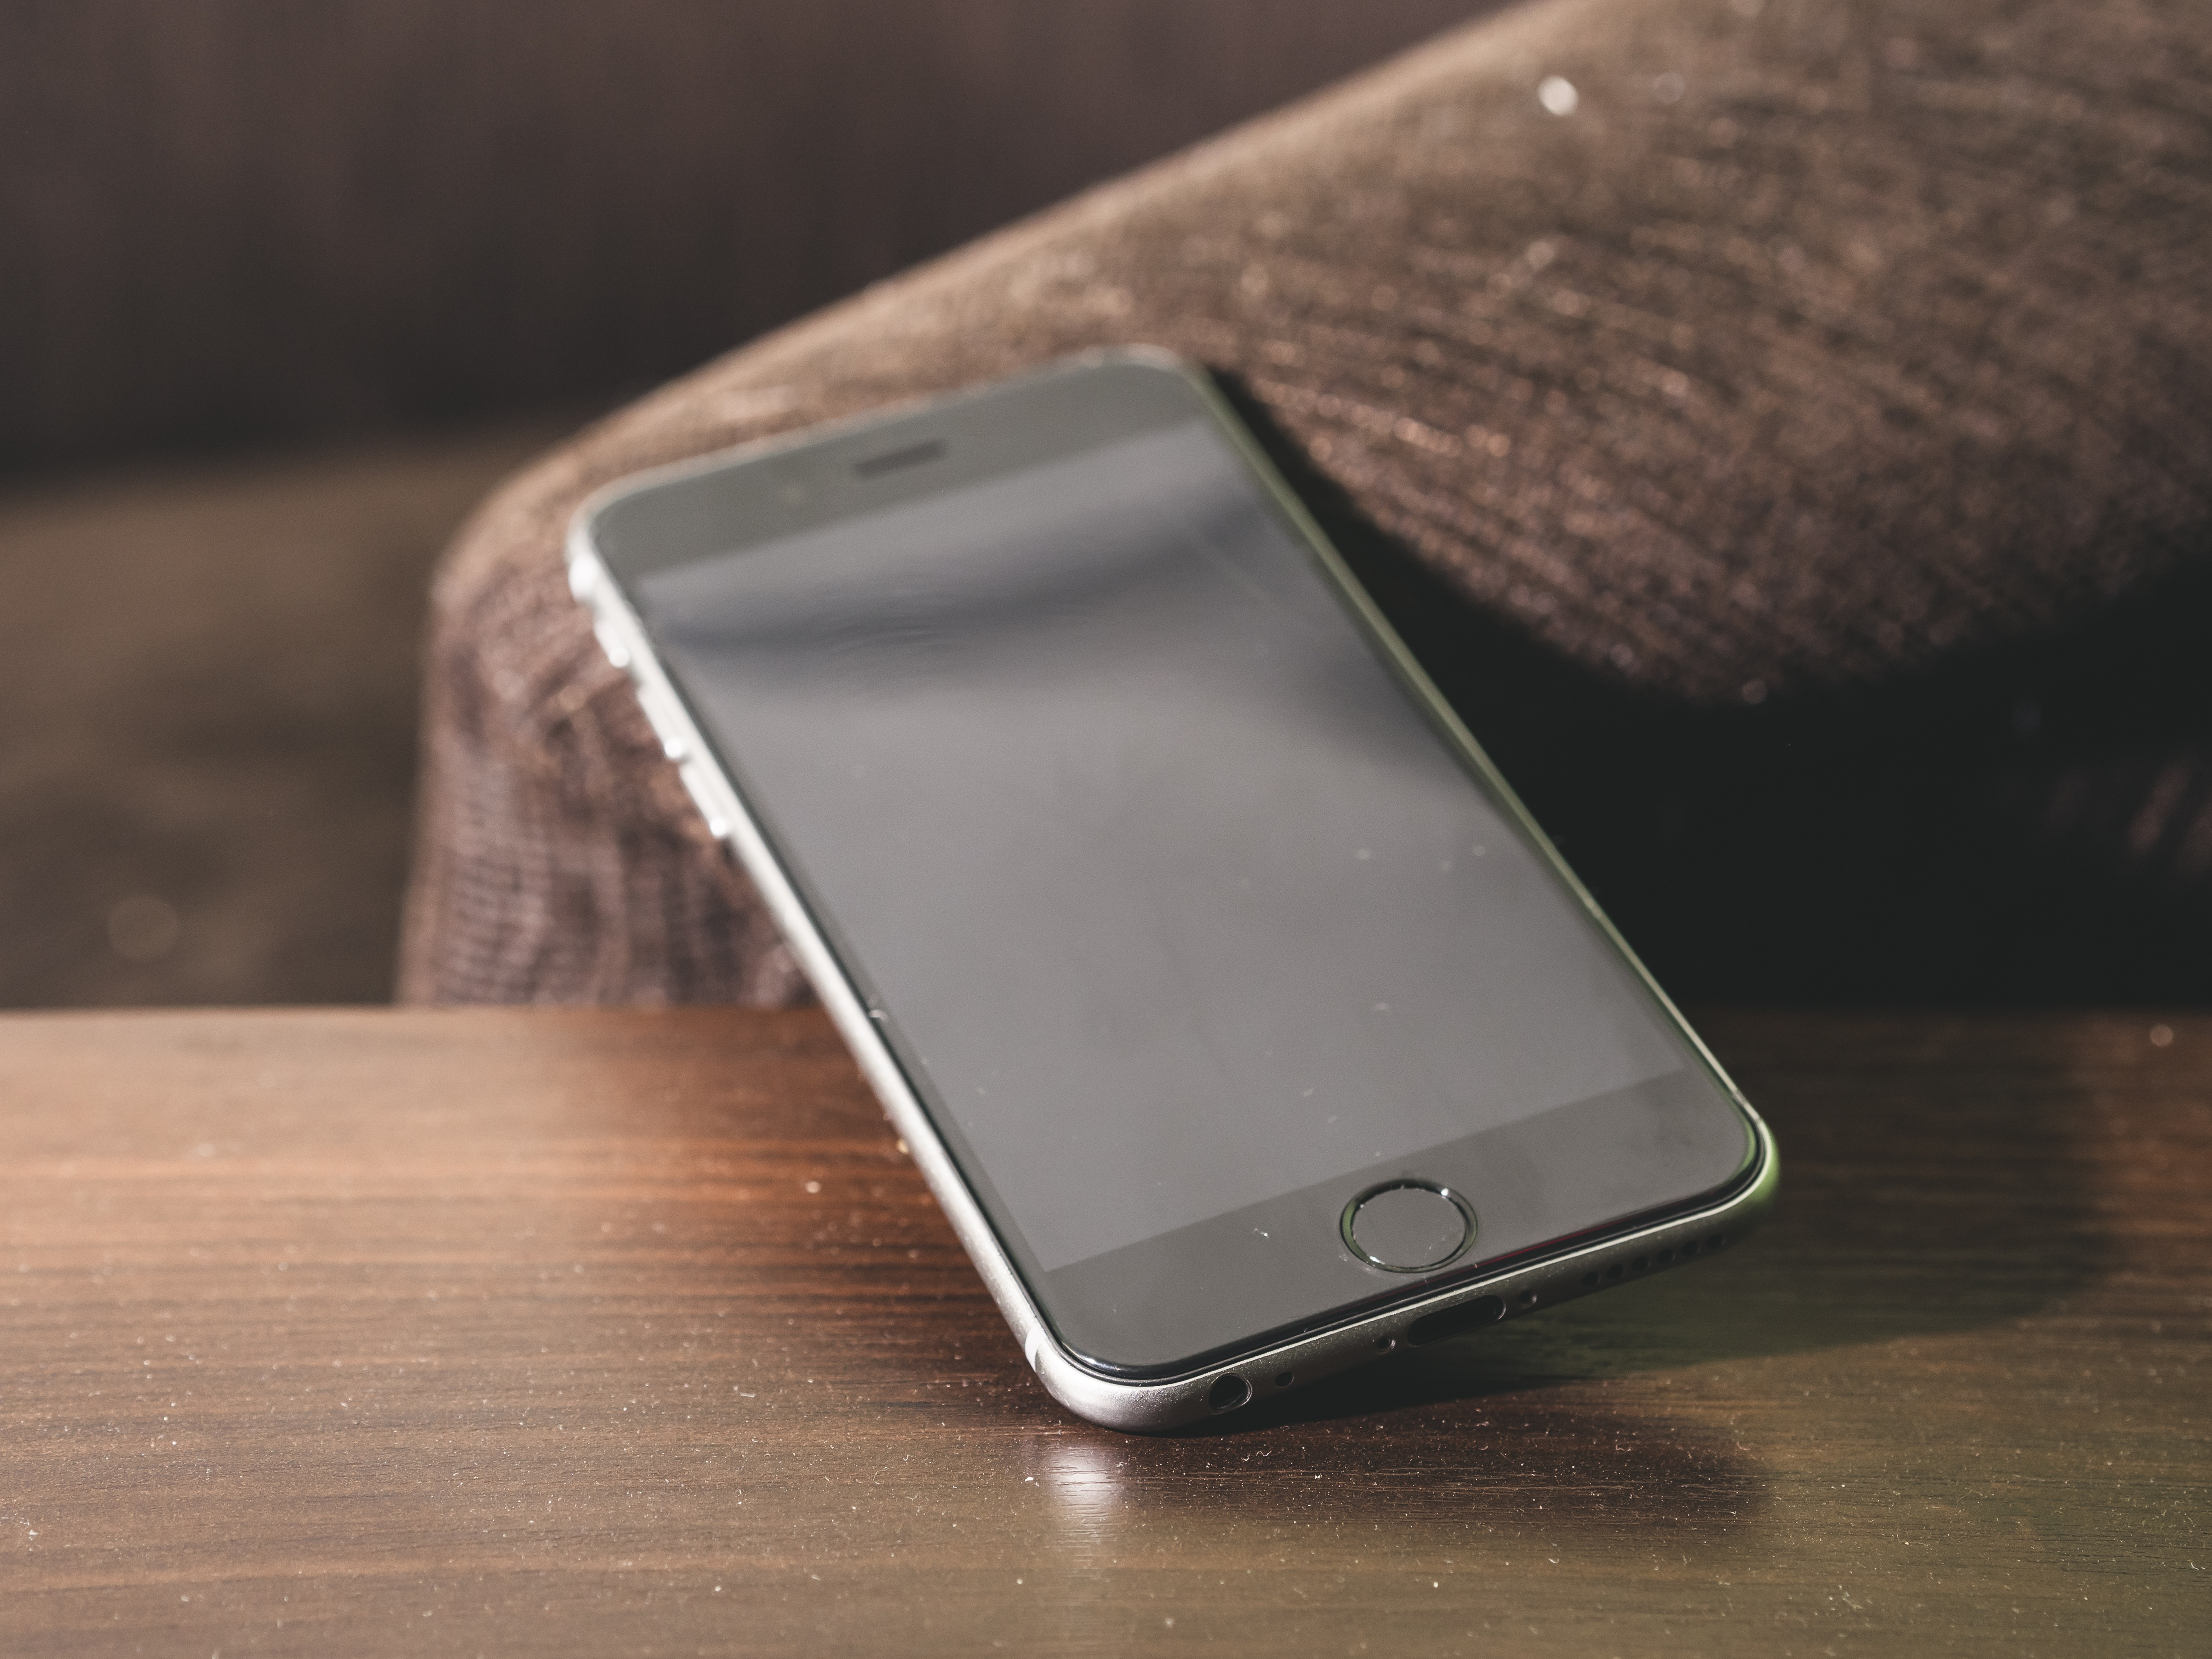 Black Switched Off Iphone On The Wooden Table Free Image